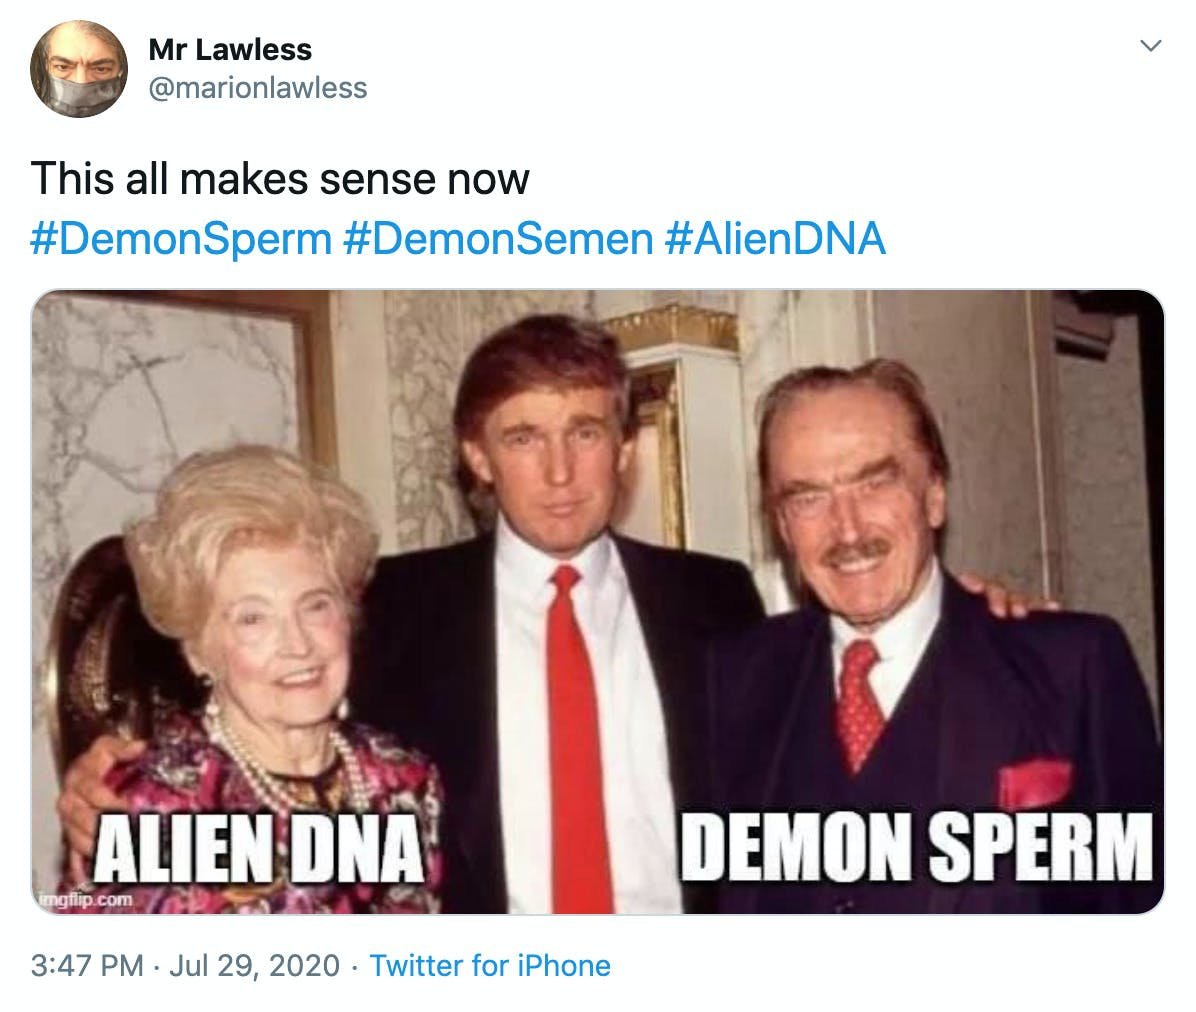 """""""This all makes sense now """" image of Trump standing between his mother on the left and father on the right. Alien DNA is written under his mother and demon semen under his father"""